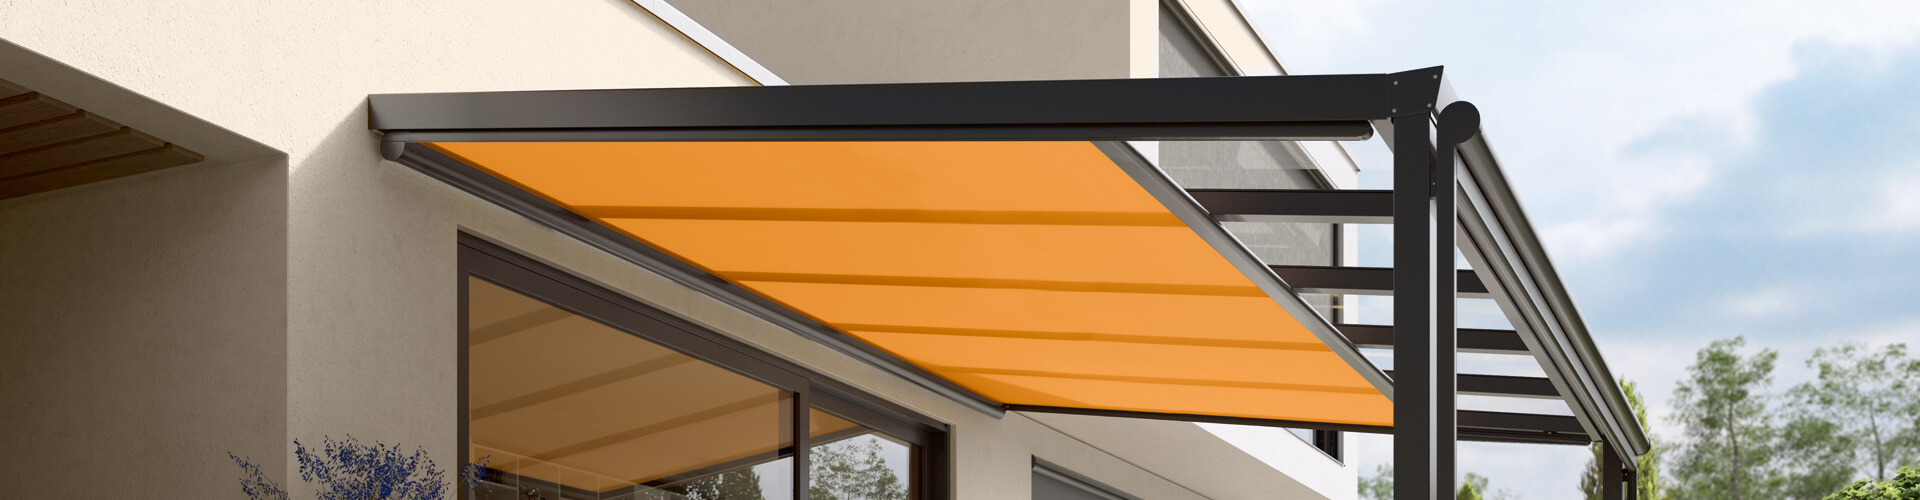 Markilux Awning Prices